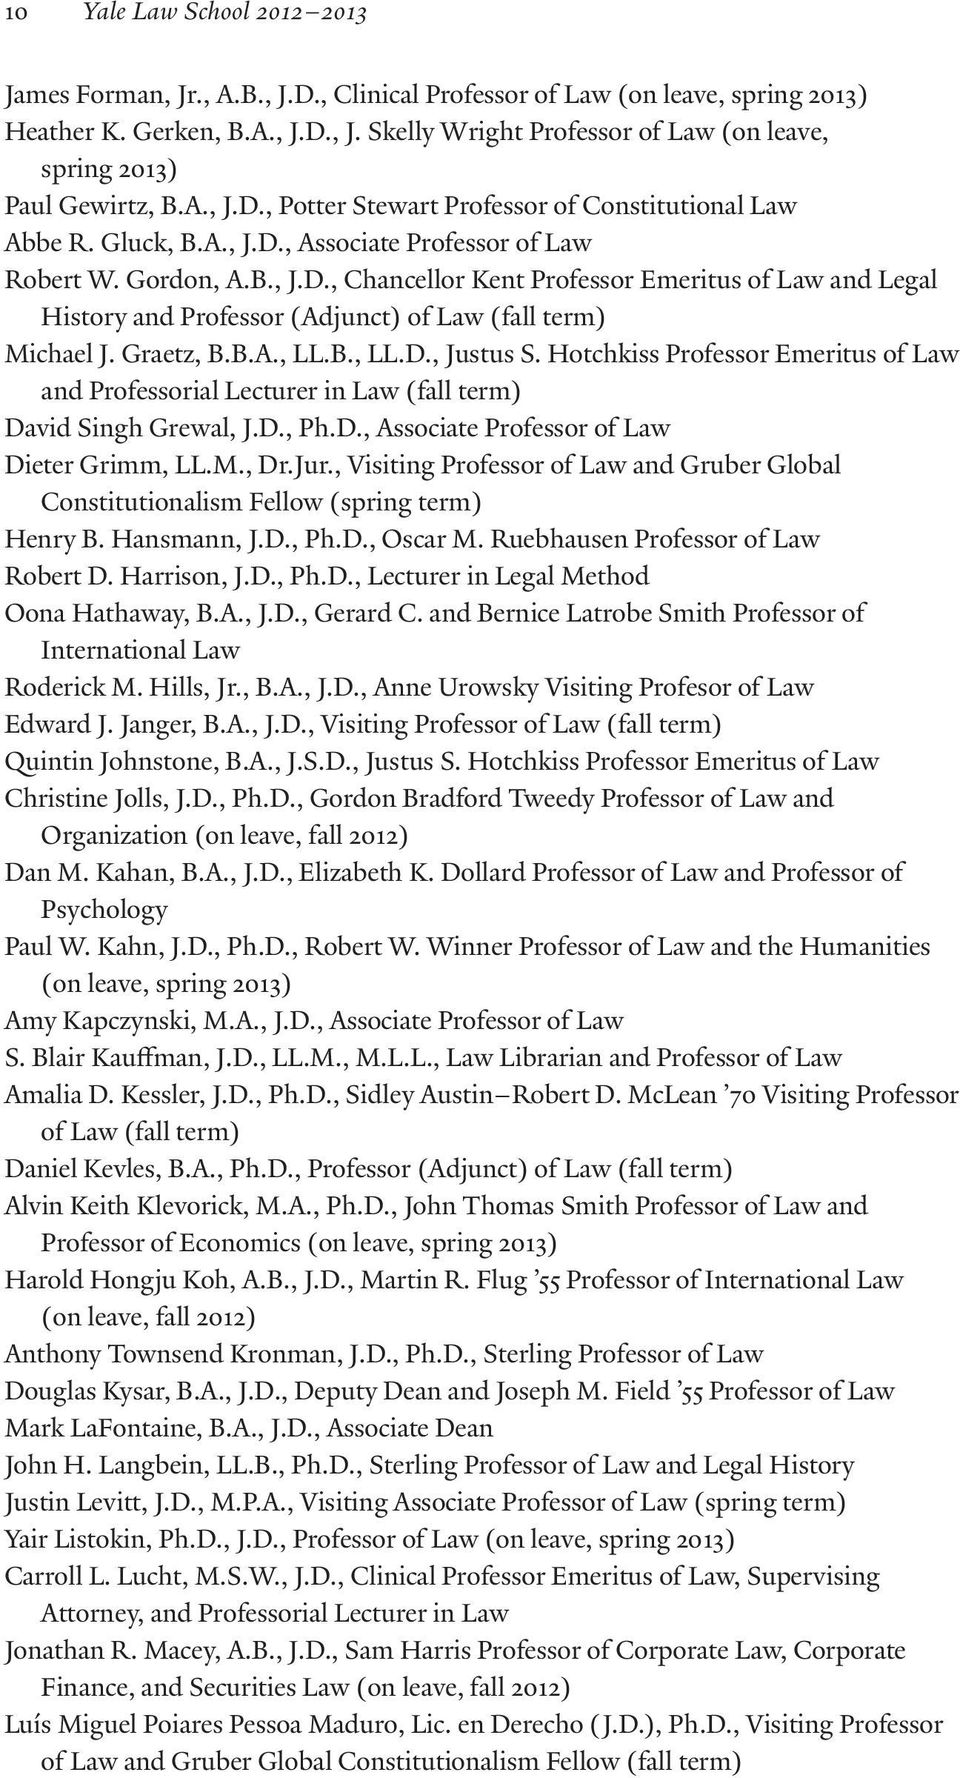 Graetz, B.B.A., LL.B., LL.D., Justus S. Hotchkiss Professor Emeritus of Law and Professorial Lecturer in Law (fall term) David Singh Grewal, J.D., Ph.D., Associate Professor of Law Dieter Grimm, LL.M.